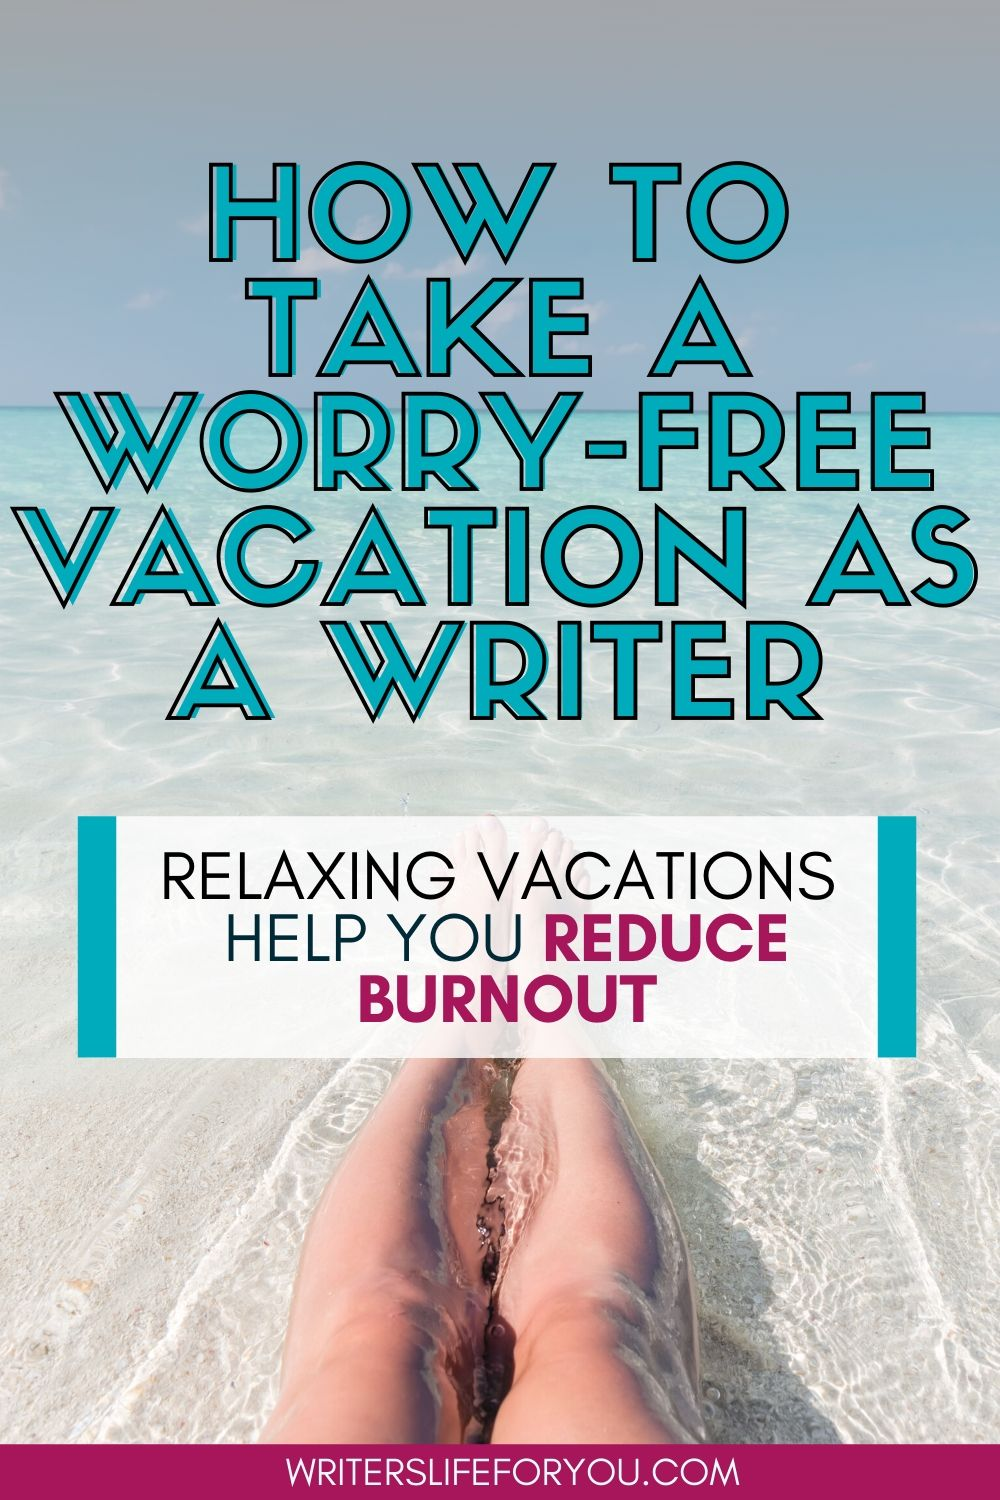 How to Take a Relaxing Worry-Free Vacation as a Writer (Even if You Barely Have Time to Eat)